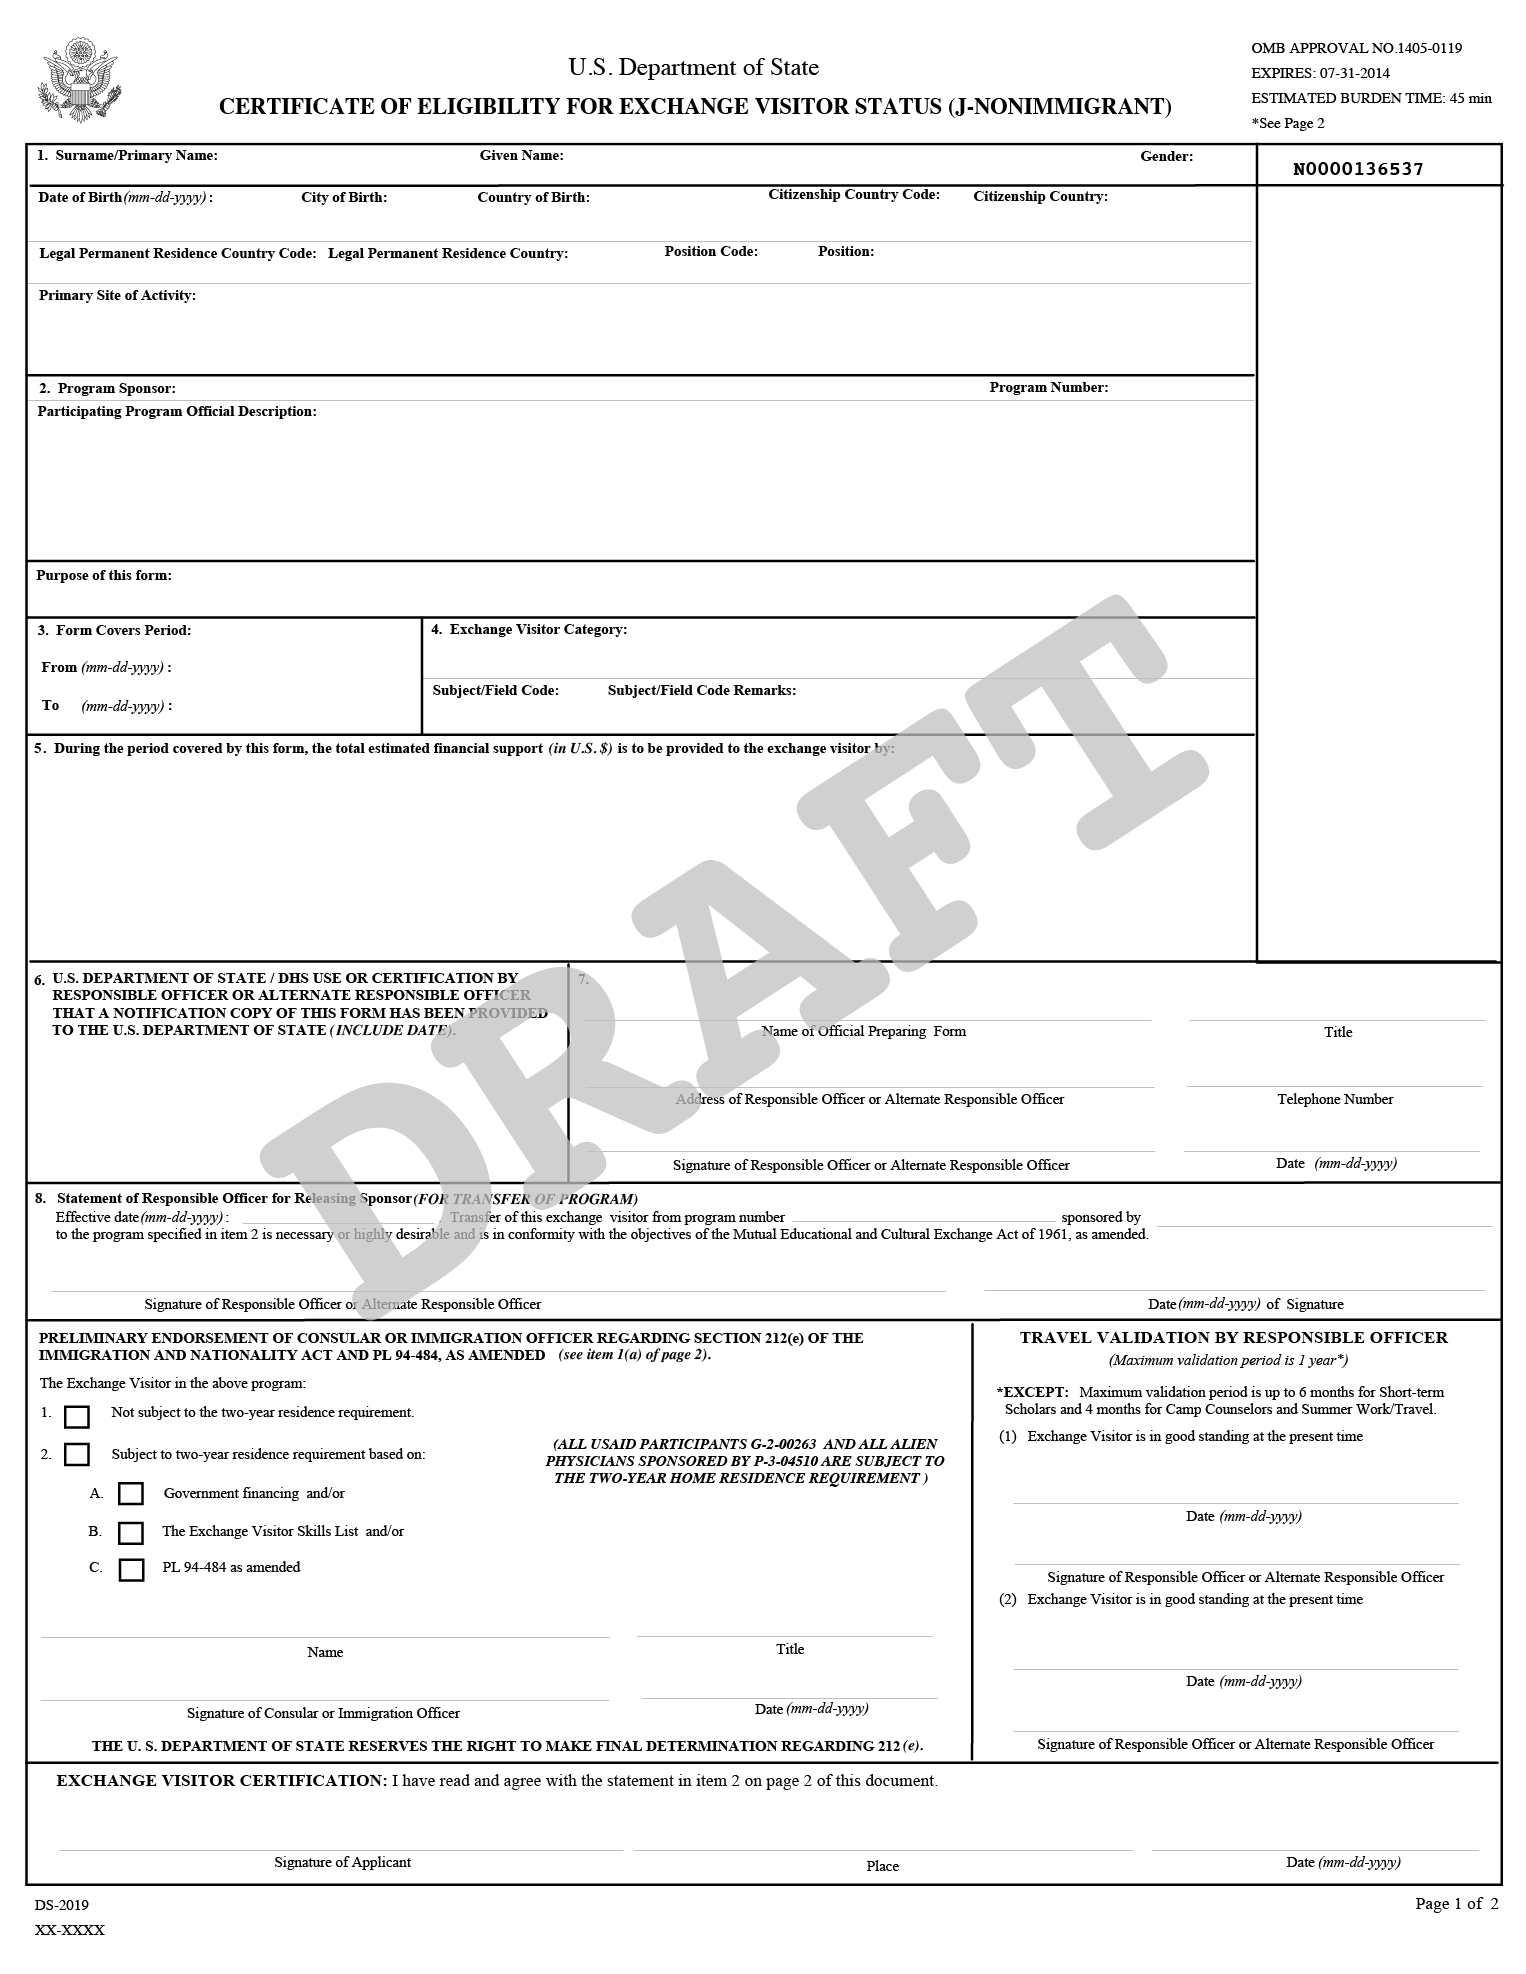 Image of DS-2019, Certificate of Eligibility for Exchange Visitor (J-1) Status